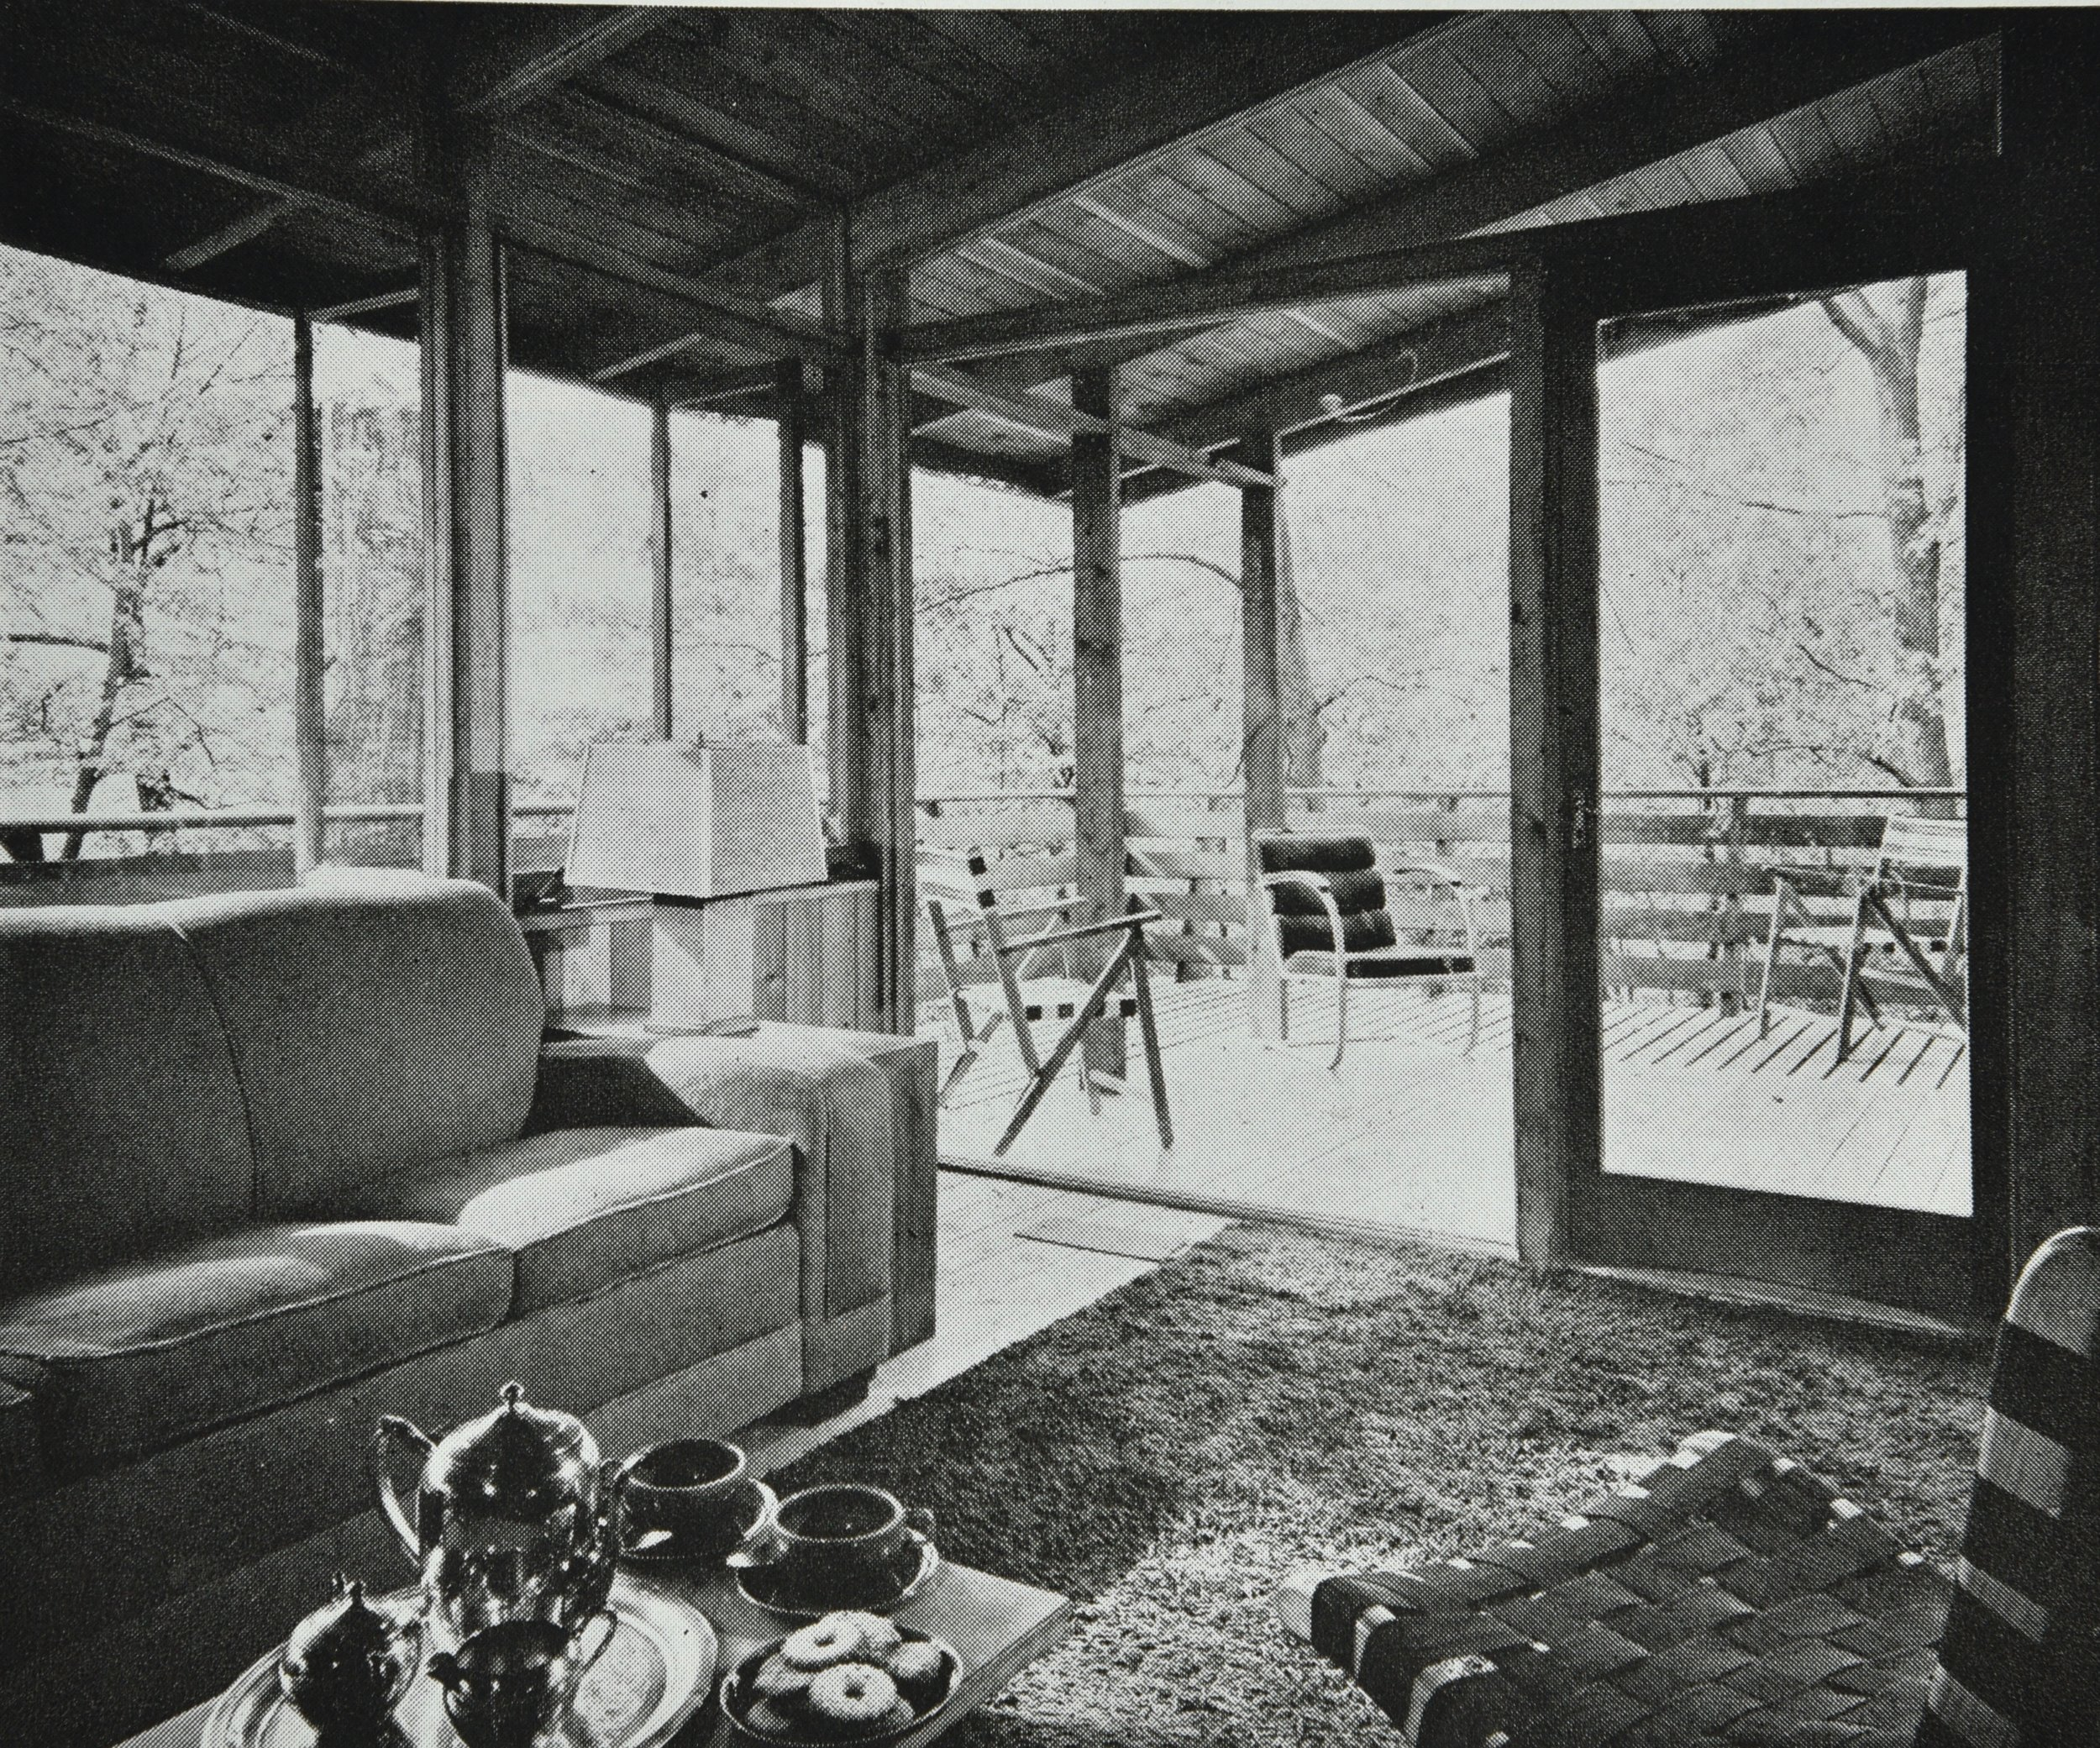 Living room looking out to cantilever porch, 1950